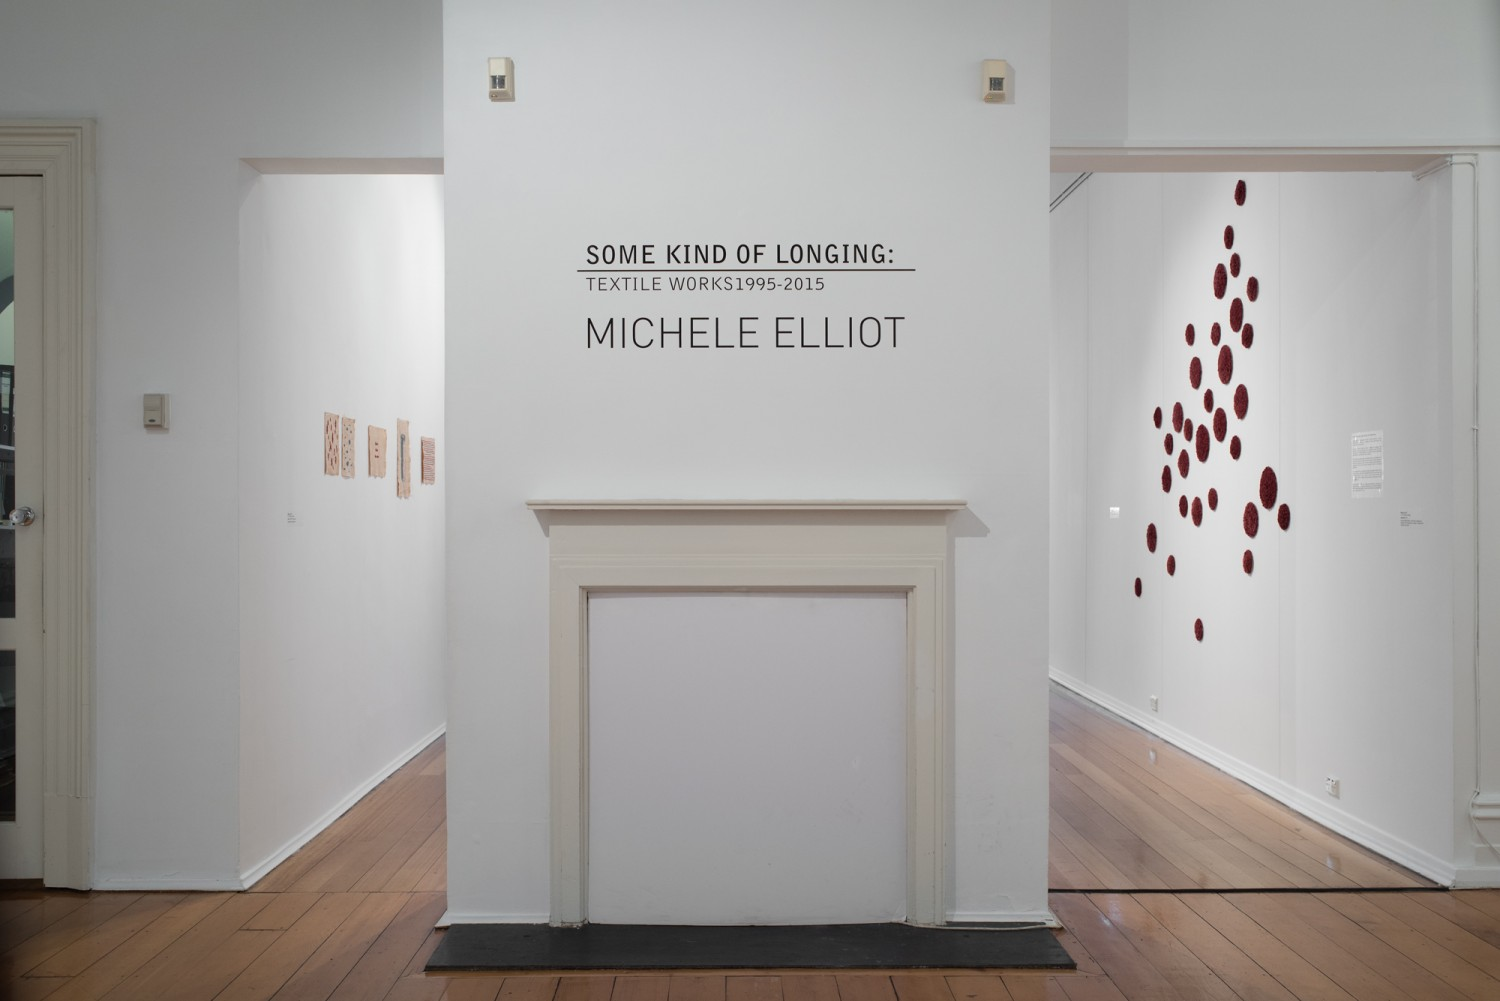 some kind of longing : textile works 1995-2014 by Michele Elliot